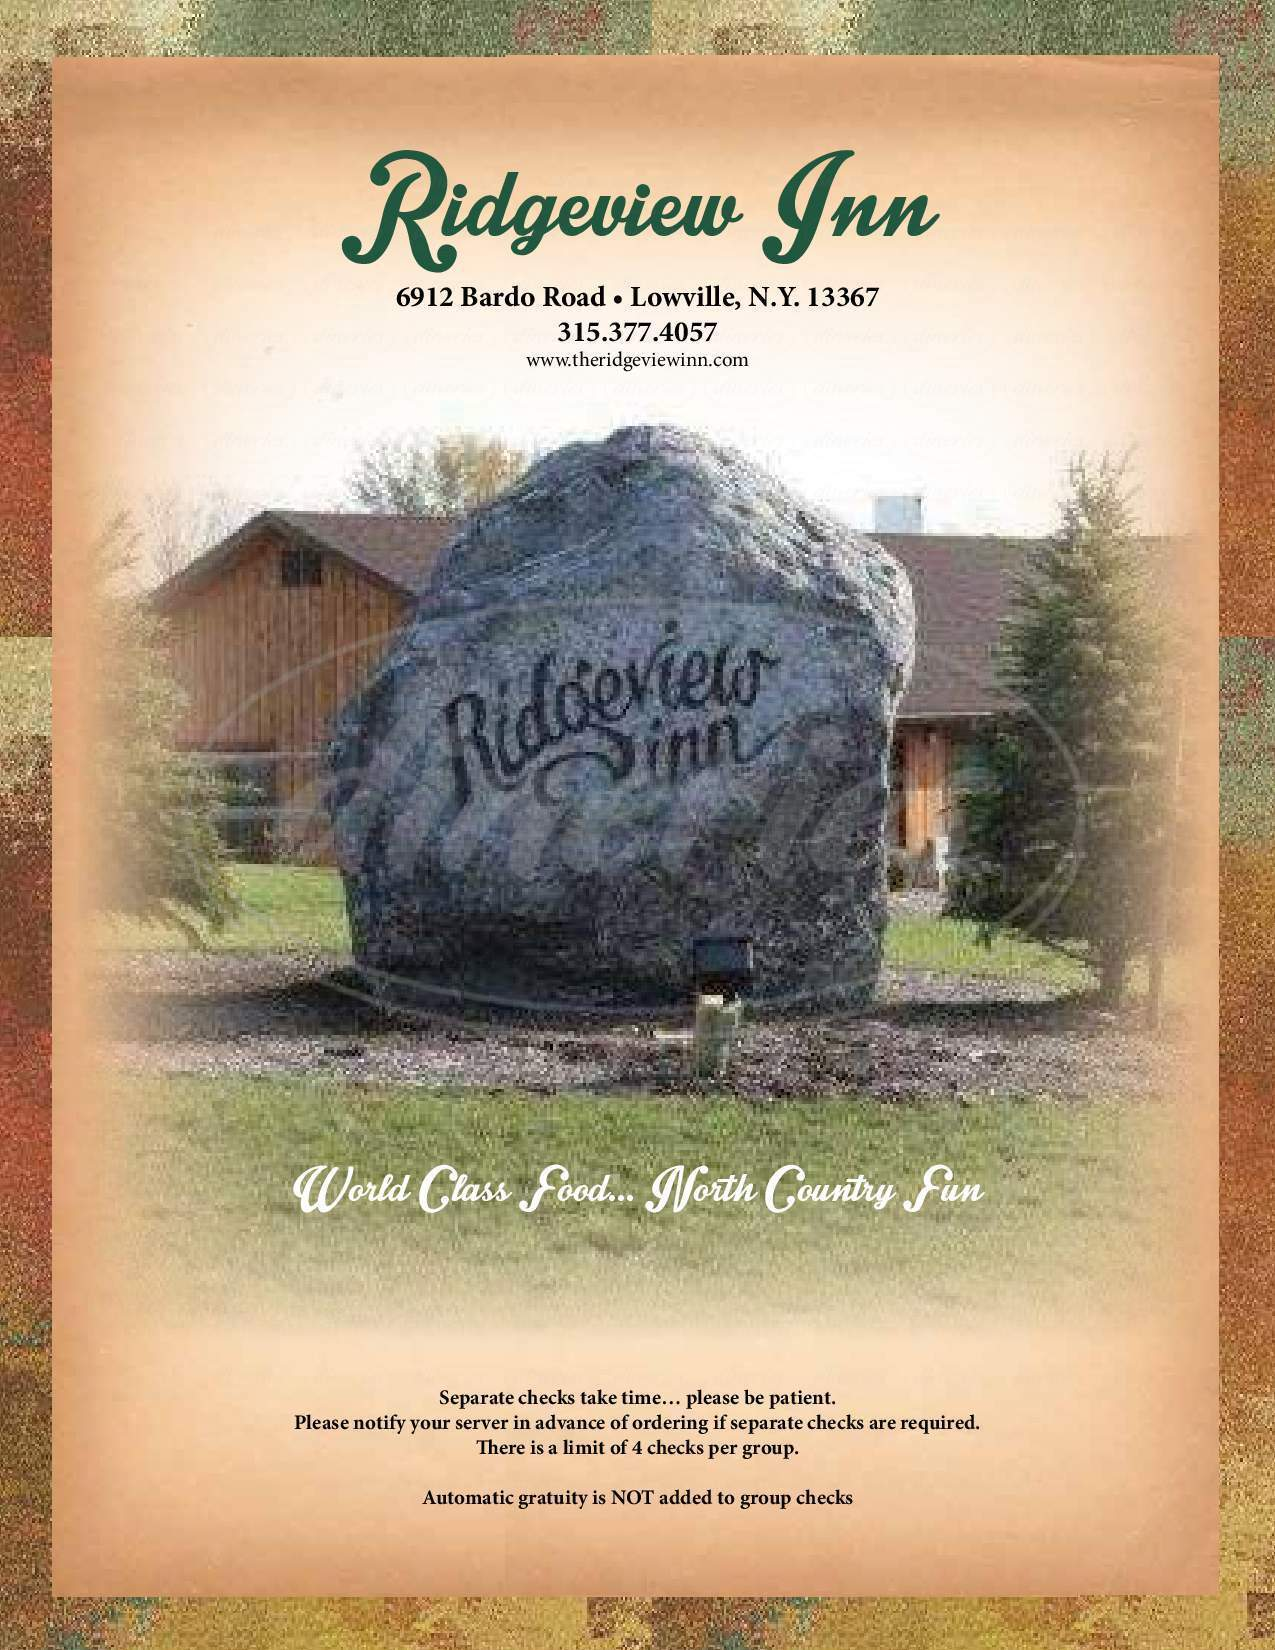 menu for The Ridgeview Inn